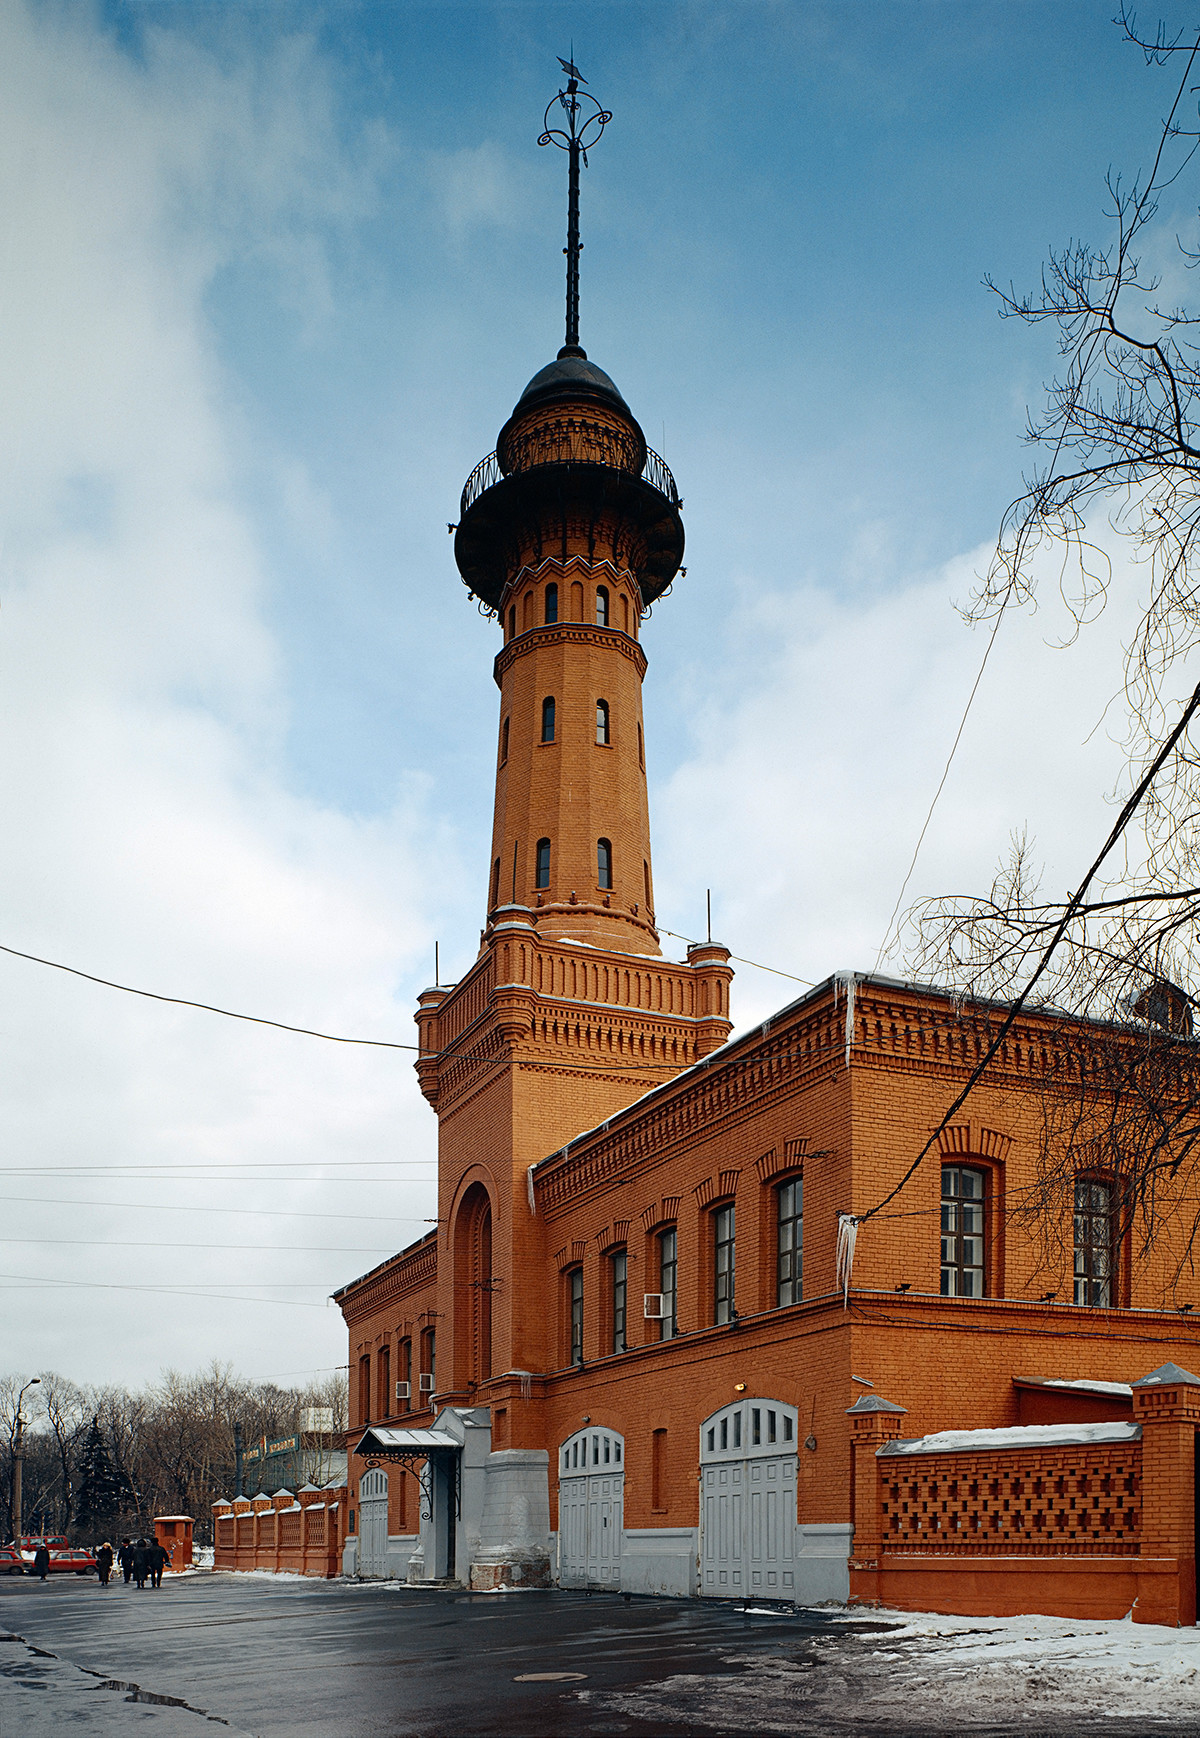 Police fire station with a tower-tower in Sokolniki